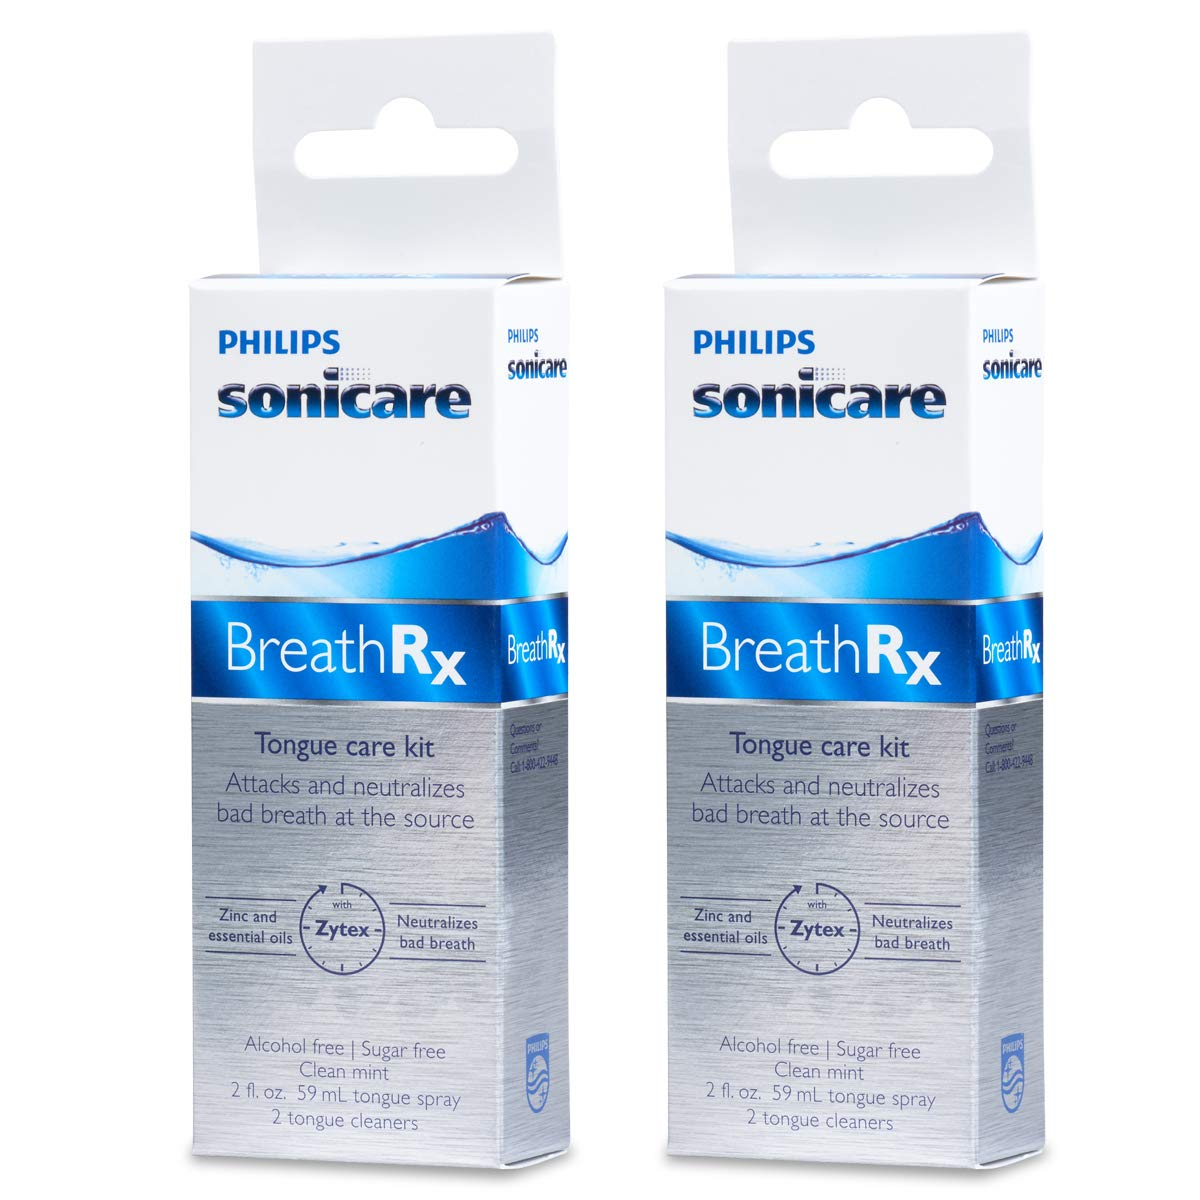 BreathRx Daily Tongue Care Kit. America's #1 Dentist Dispensed Breath Care System (Pack of 2) : Tongue Cleaners : Beauty